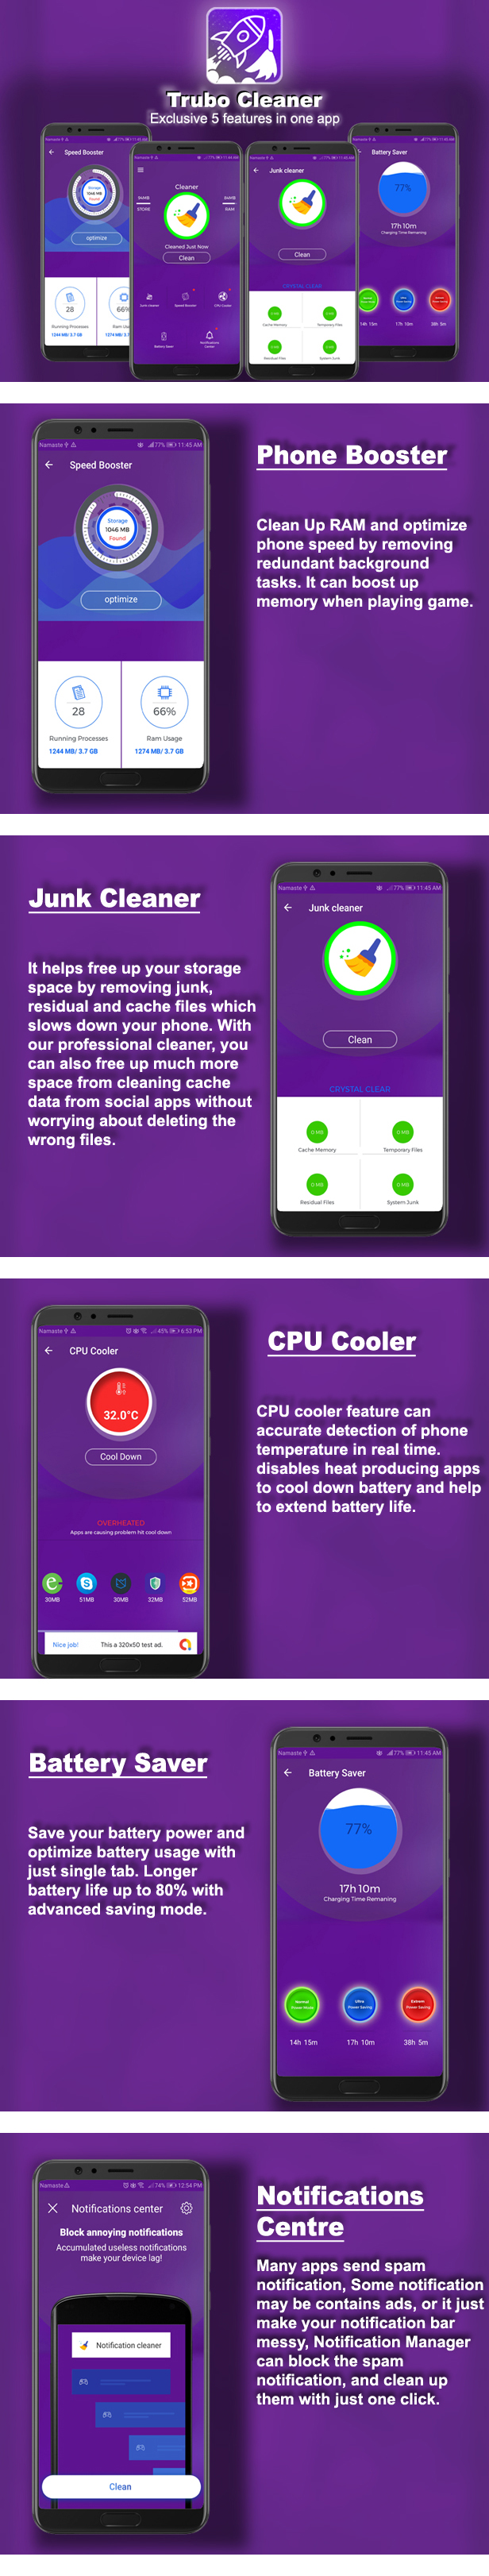 Android Turbo Cleaner - Booster, Cleaner, Battery Saver & Notification Manager - 4